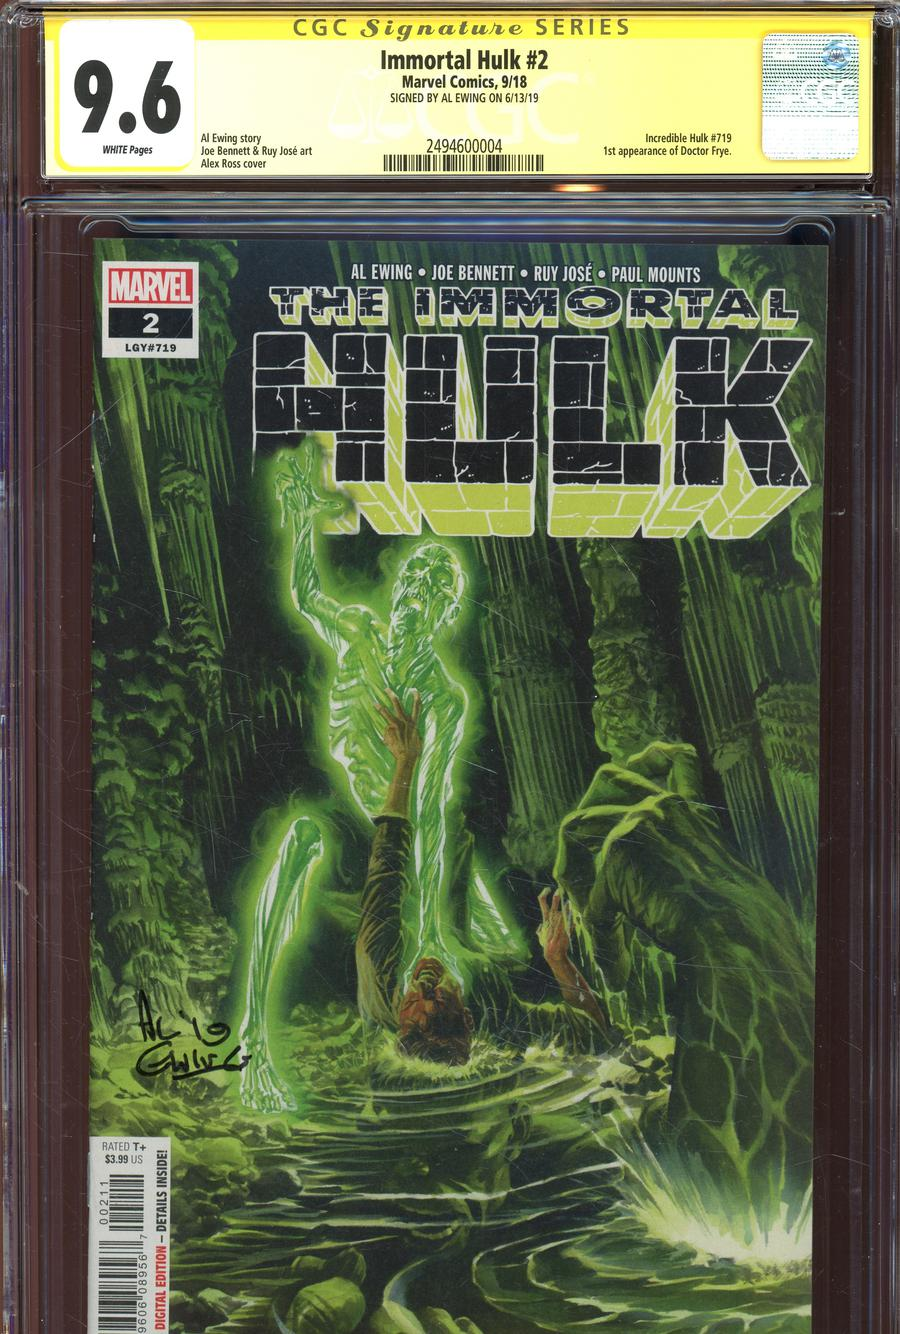 Immortal Hulk #2 Cover H Regular Alex Ross Cover Signed By Al Ewing CGC 9.6